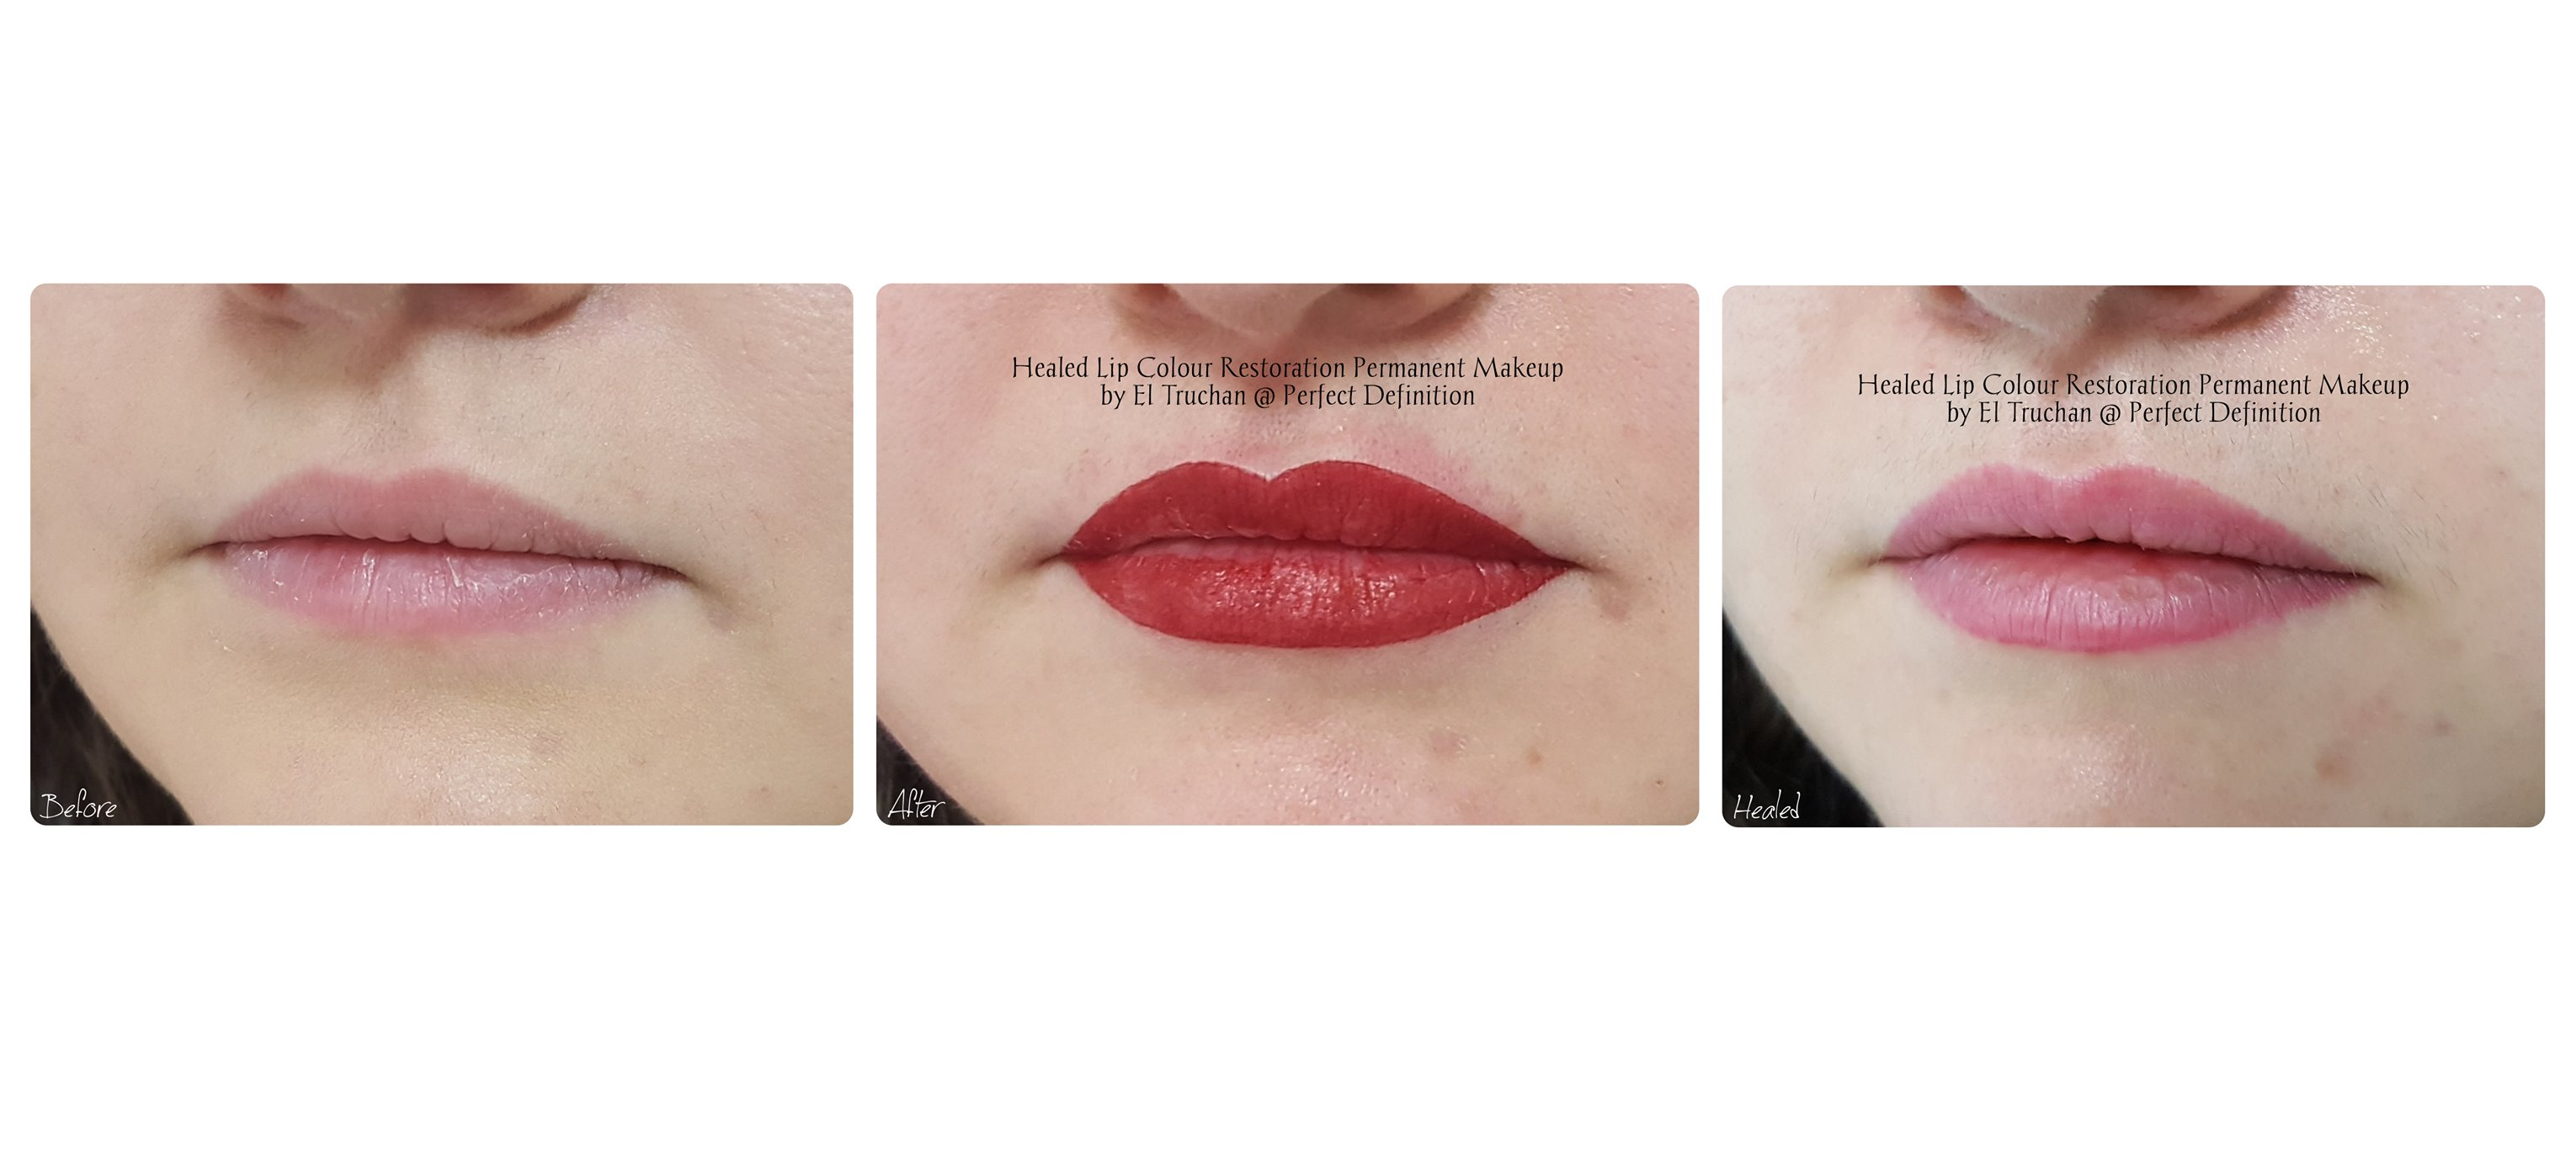 Healed Lip Colour Restoration Permanent